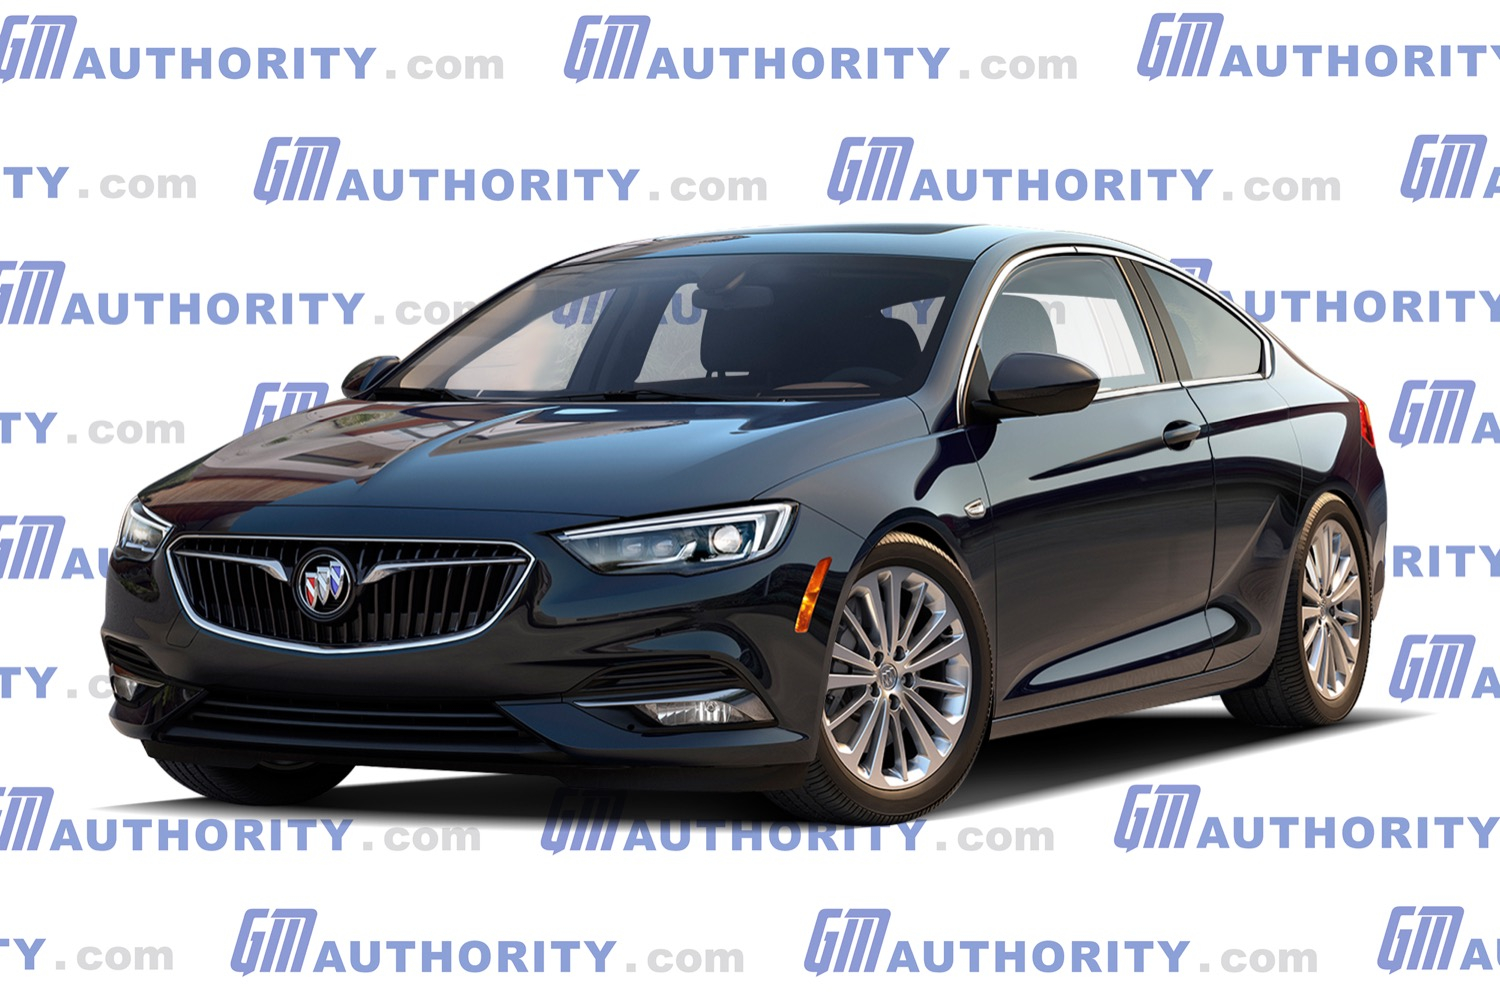 New Renderings Show Hypothetical Buick Regal Coupe | Gm Show Me A New 2022 Buick Regal